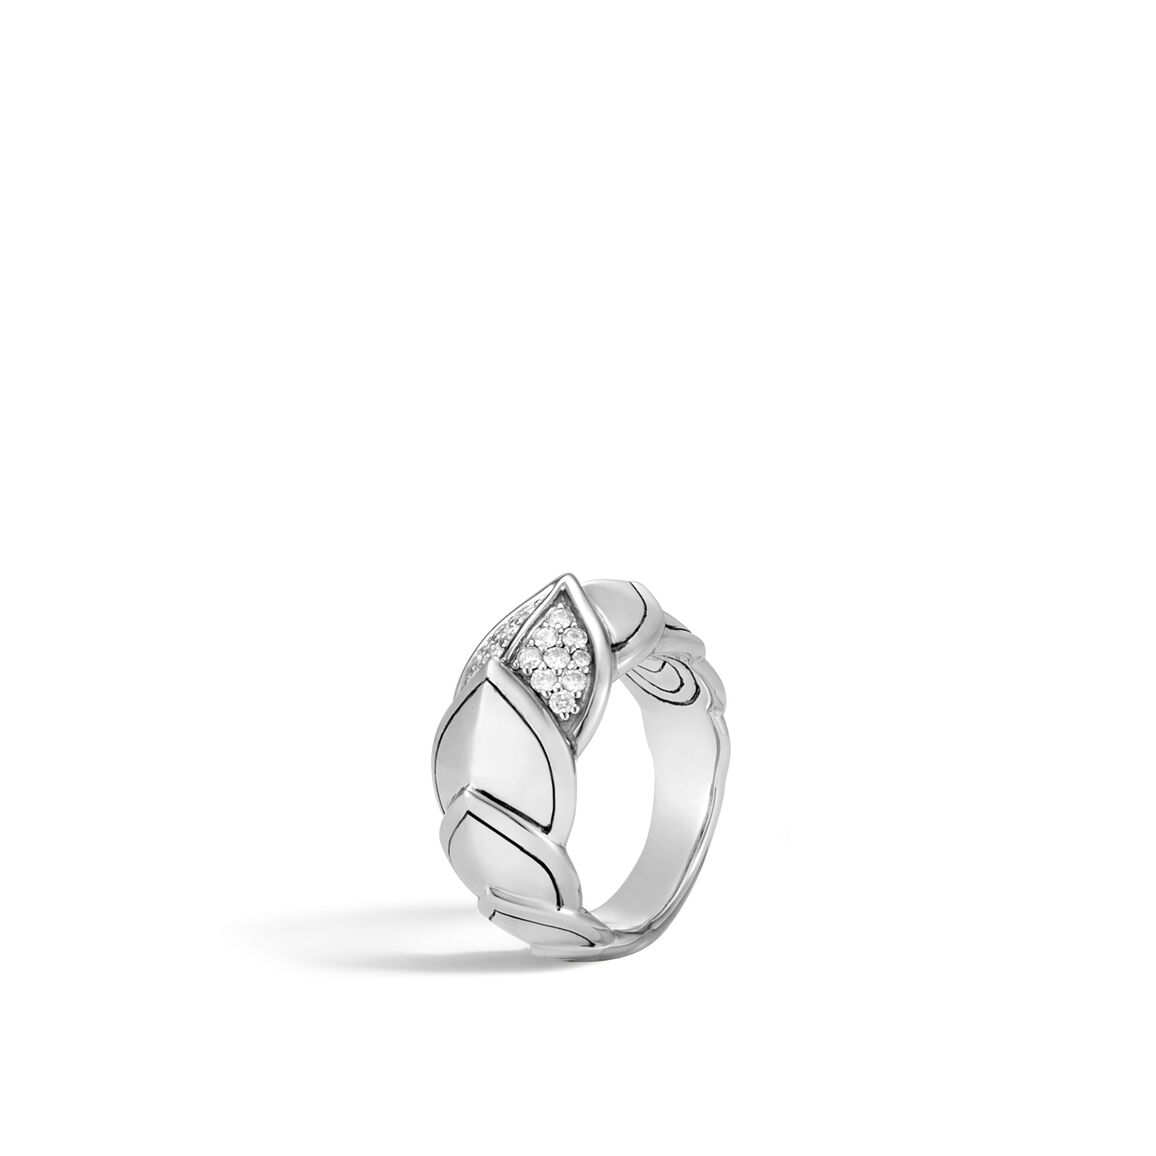 Legends Naga 11.5MM Ring in Silver with Diamonds